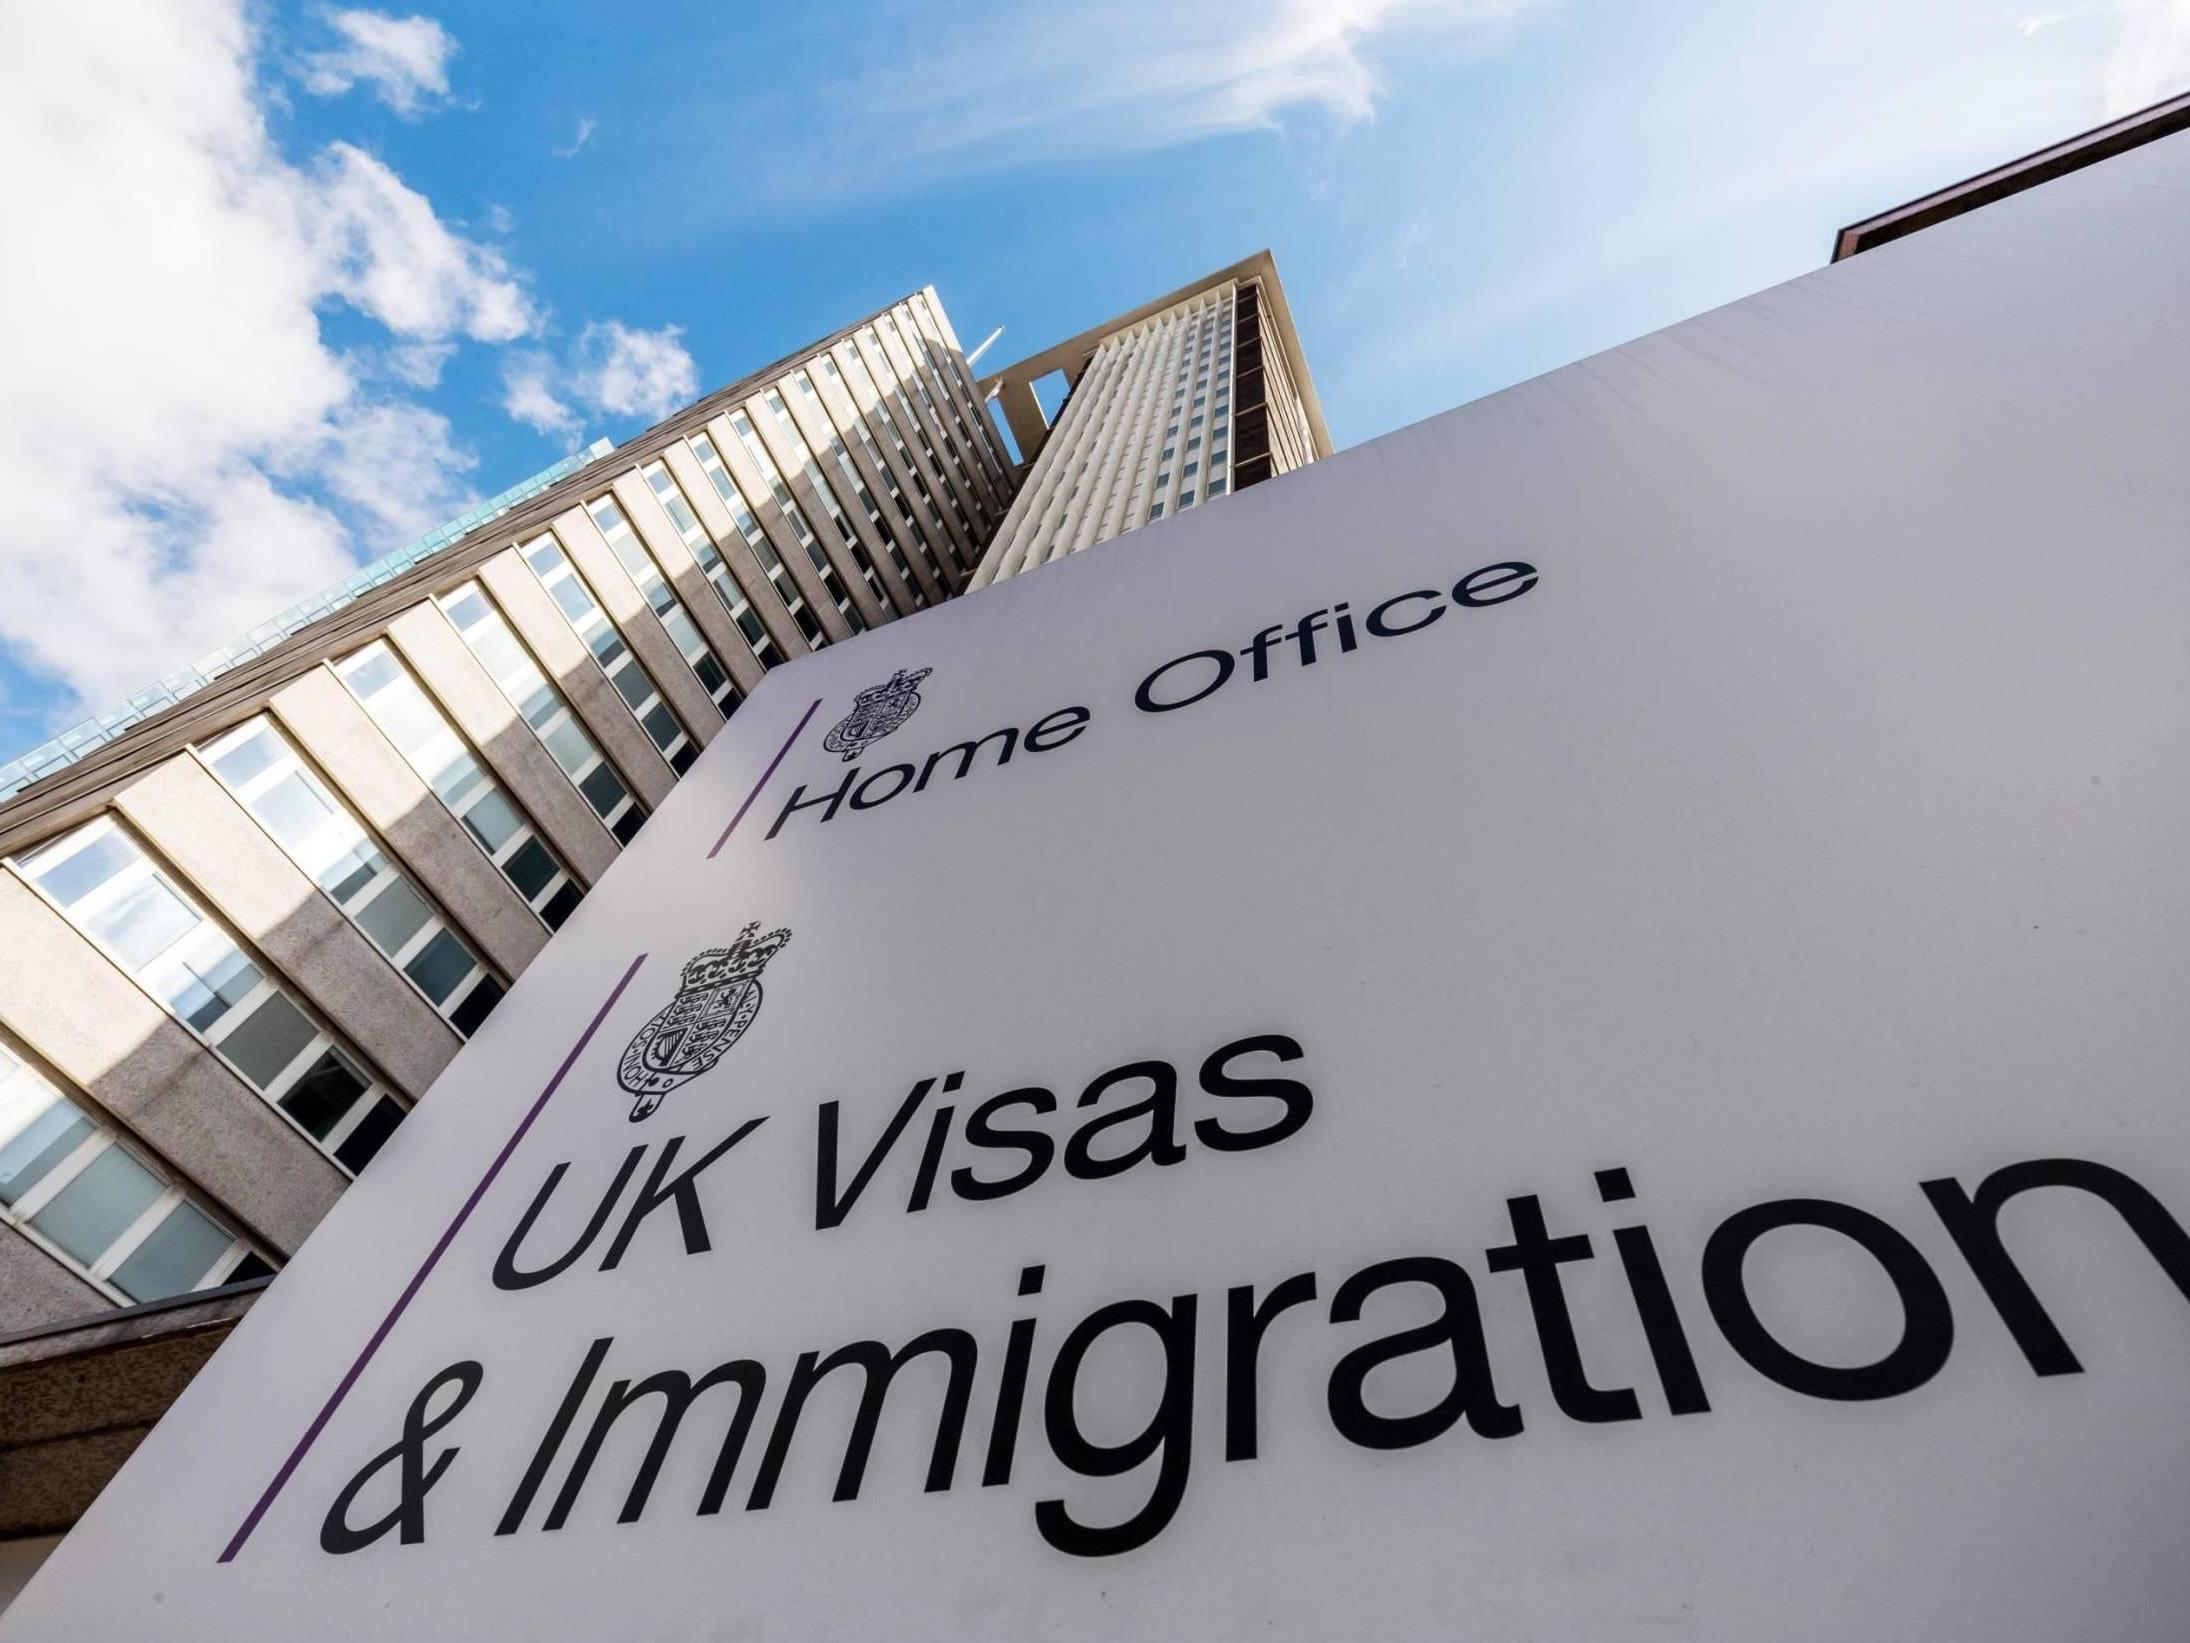 How Home Office makes millions a week from outsourcing visas to Dubai-based firm accused of exploitation